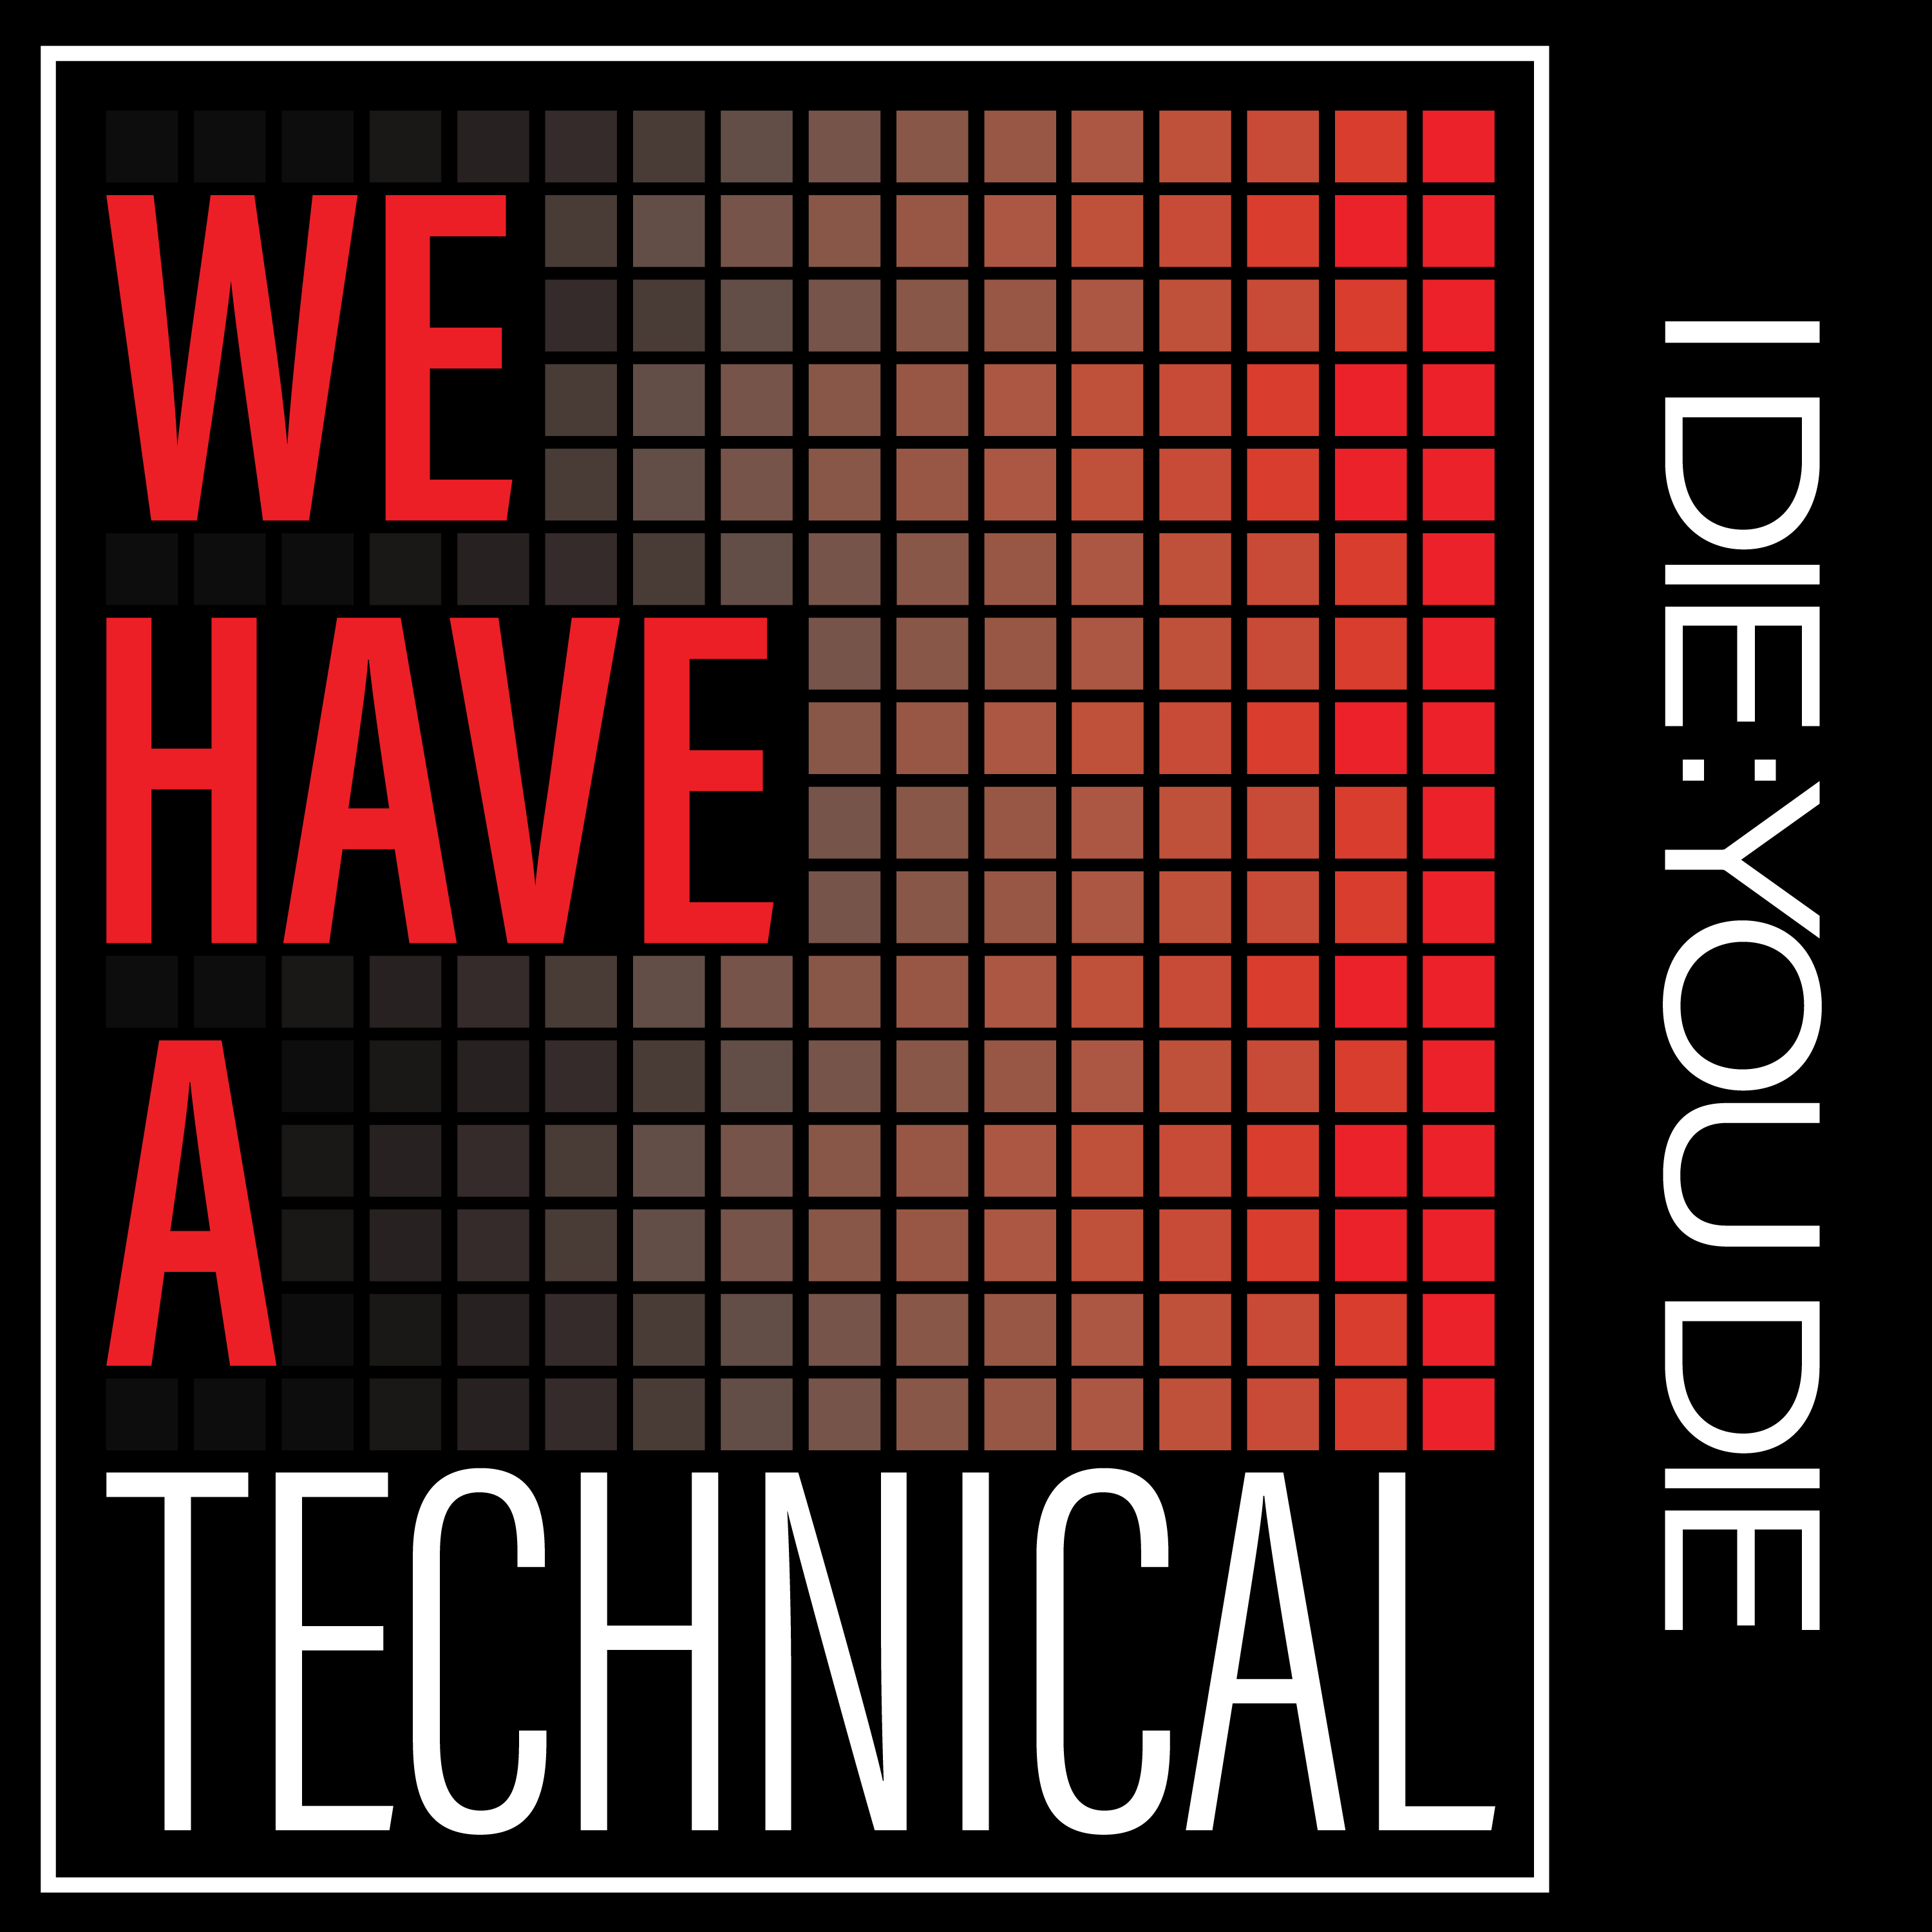 We Have a Technical show art